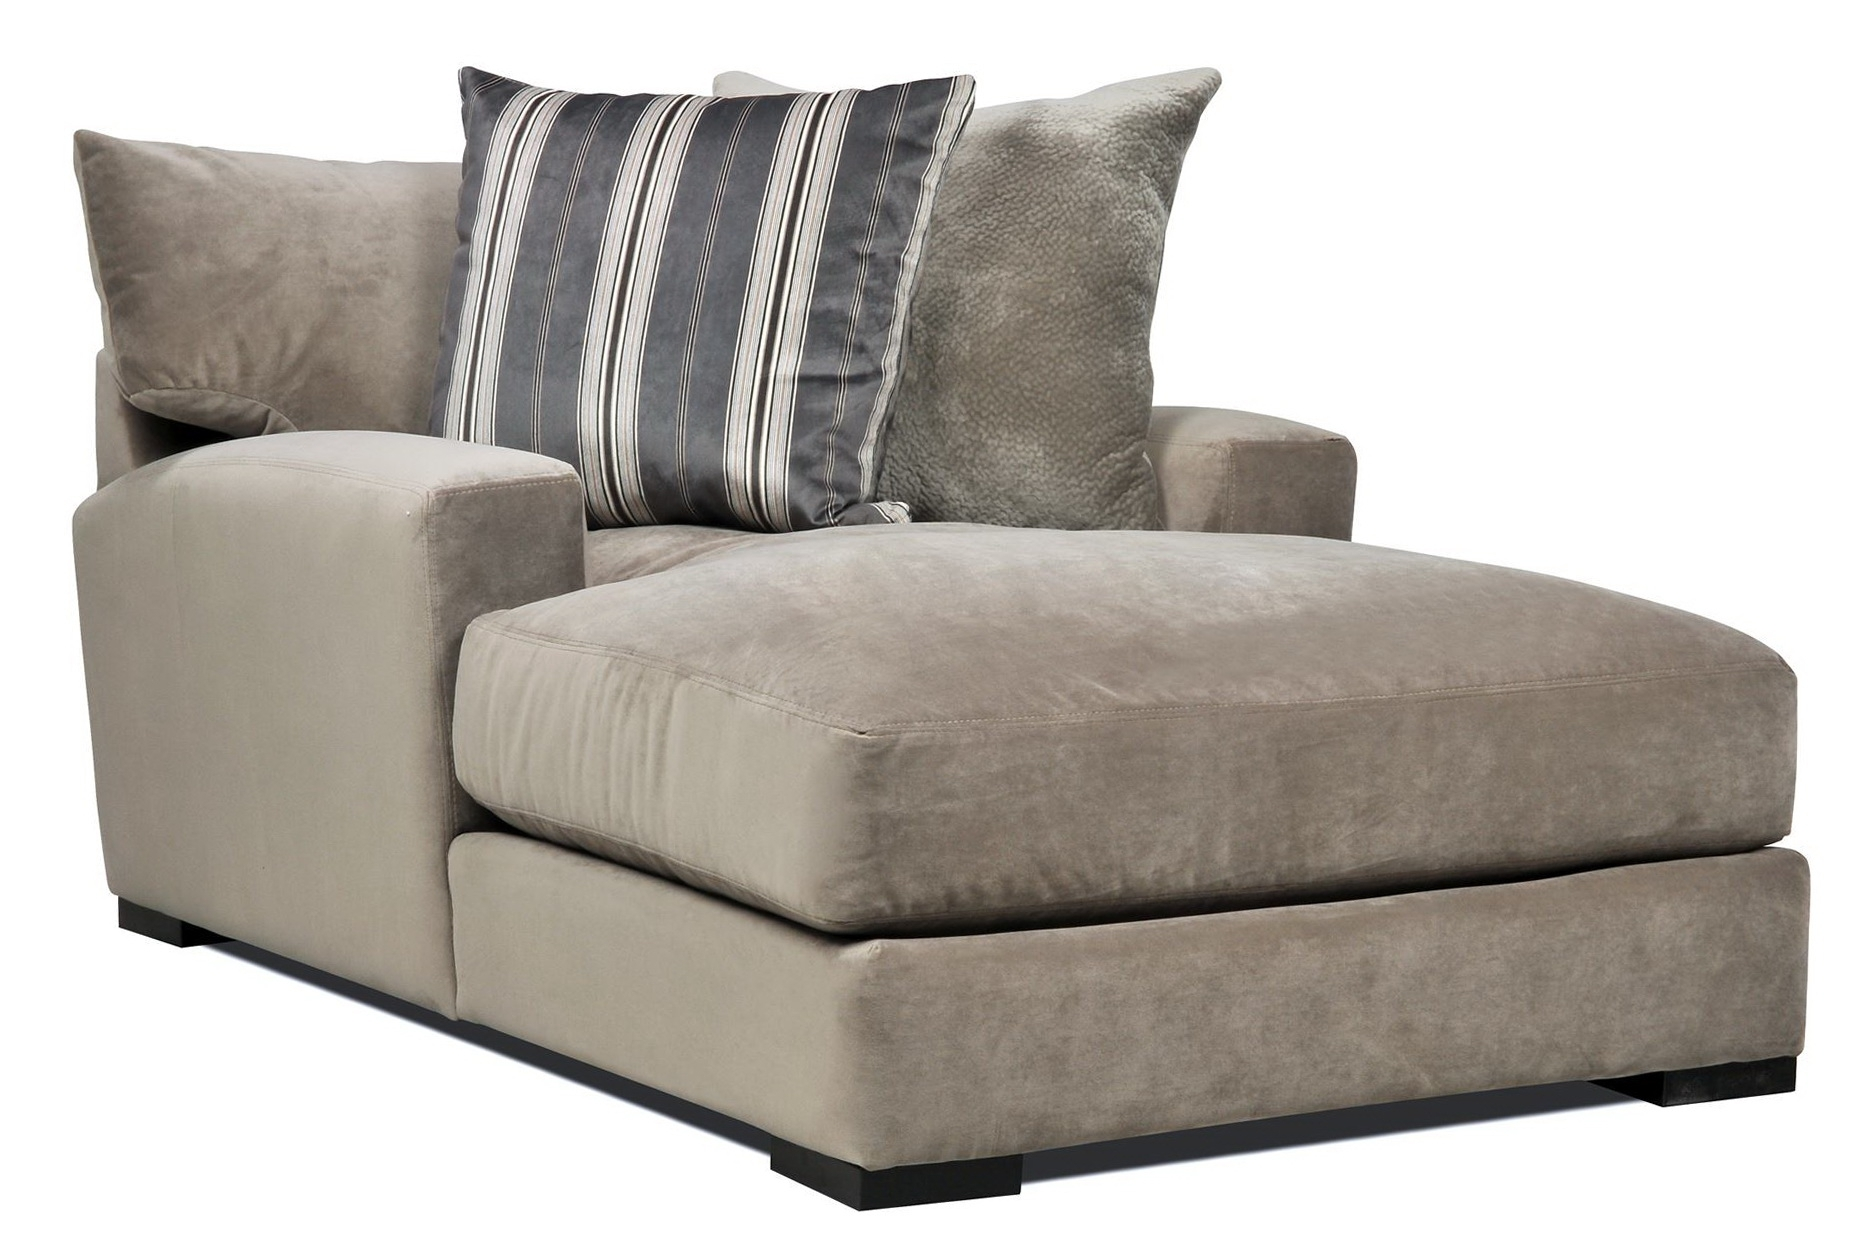 Popular Furniture: Chaise Lounge Couch (View 15 of 15)